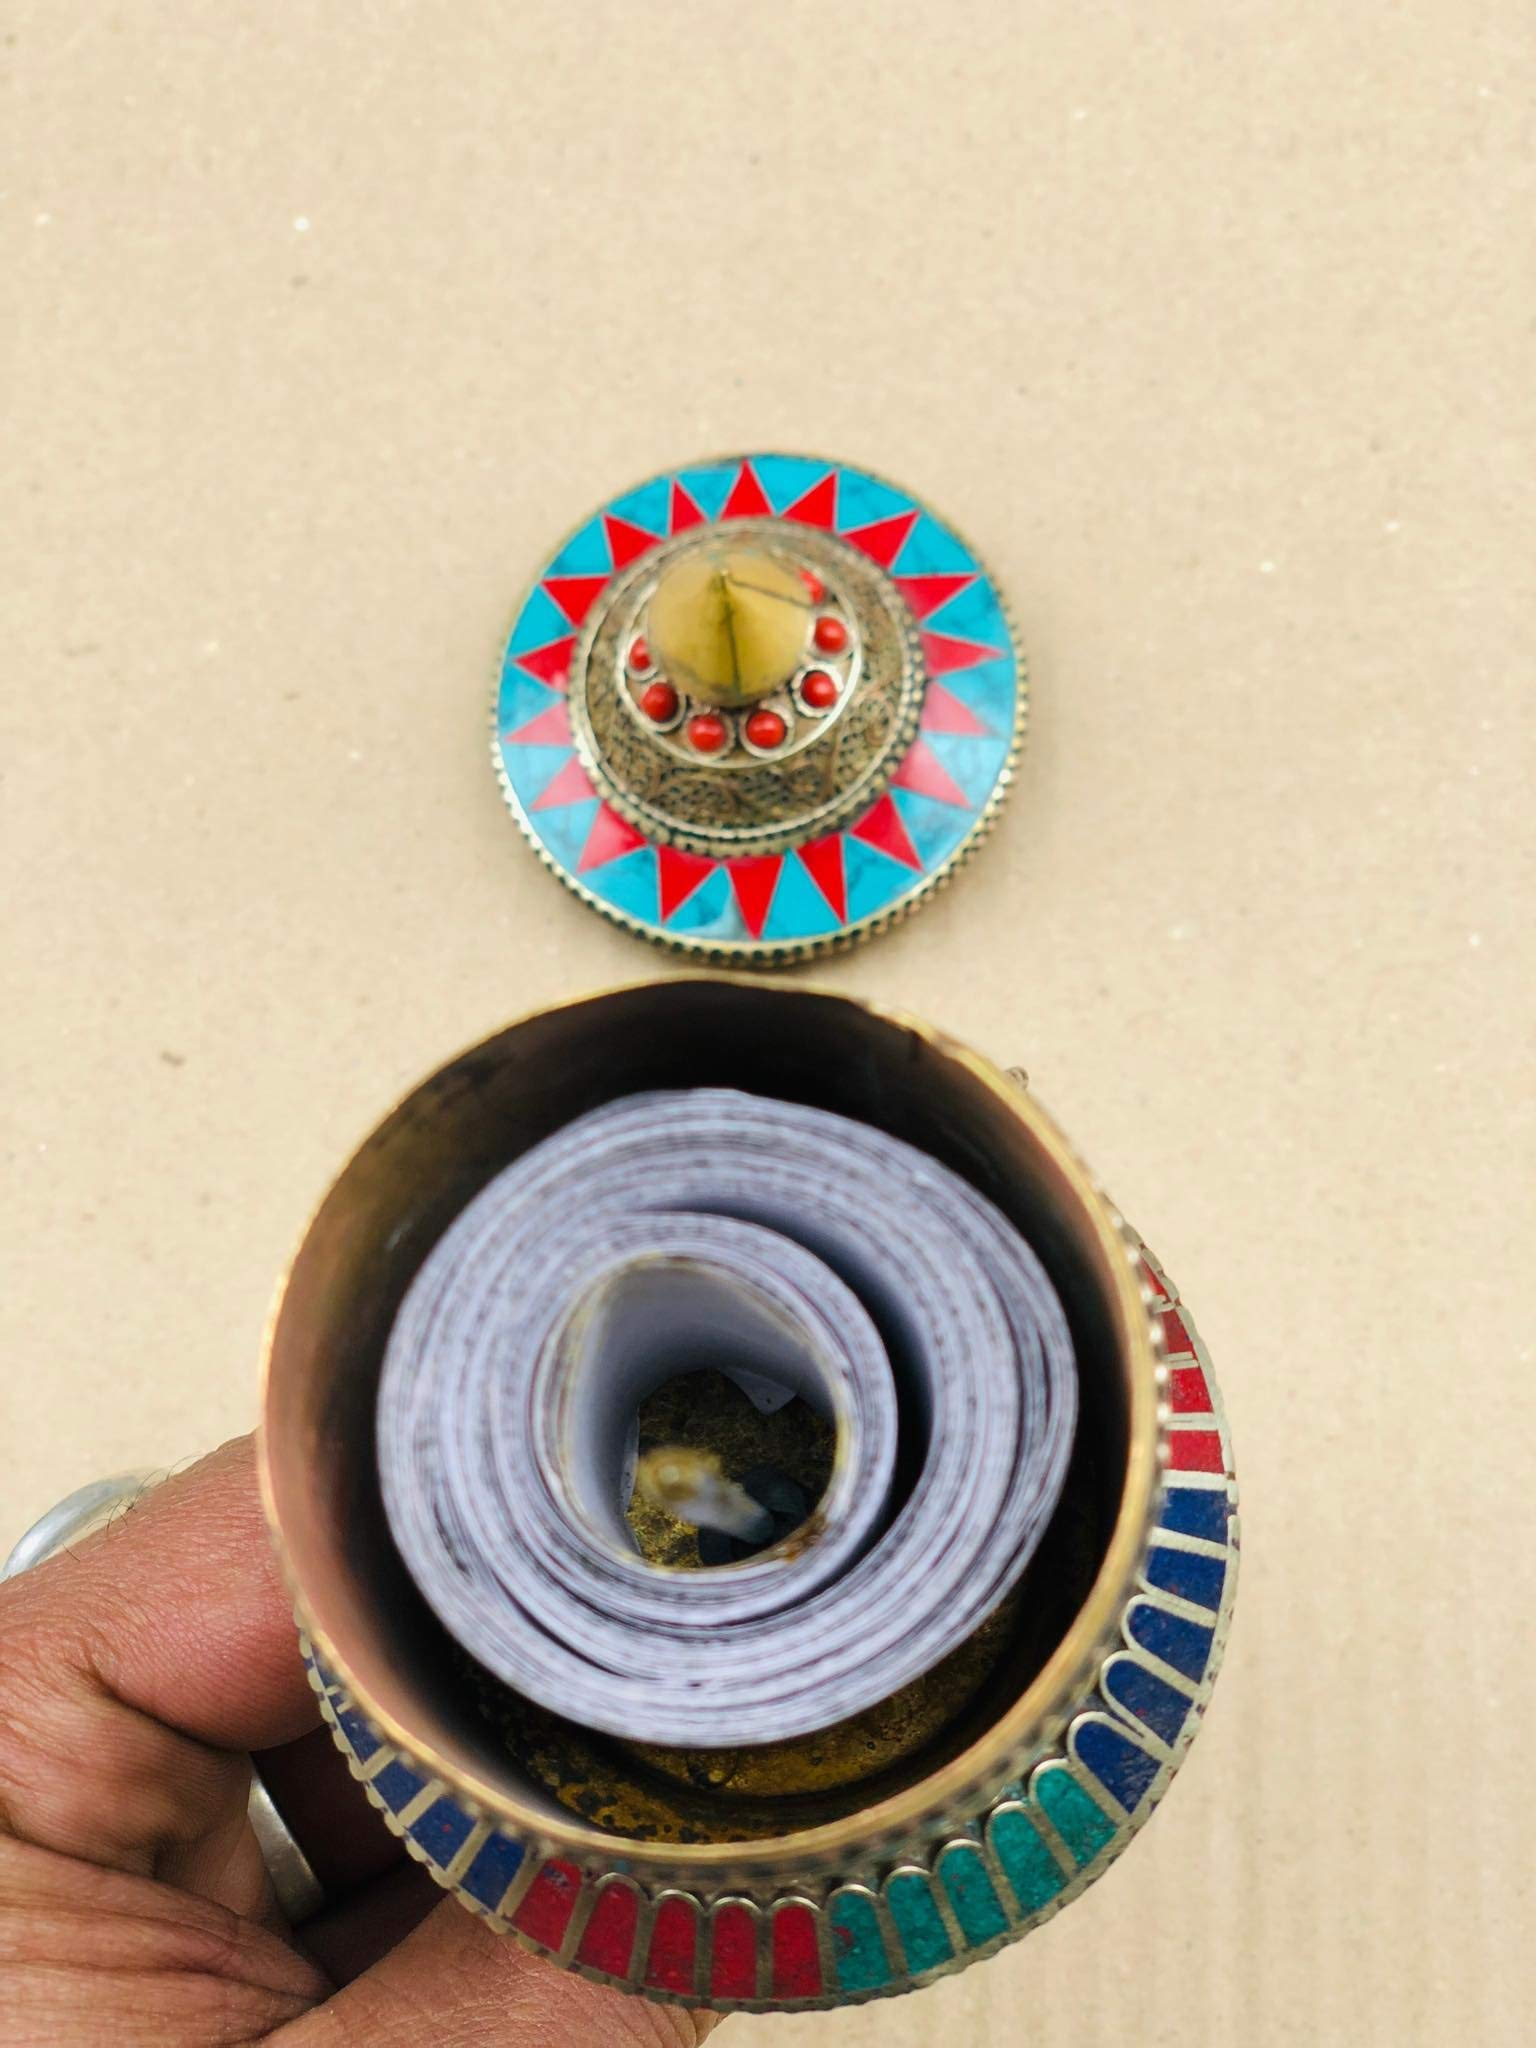 Buddhist Brass & Stone Set Hand-held Prayer Wheel - 9 Inch with Authentic Wooden Handle by Singing Bowl Nepal (Image #4)